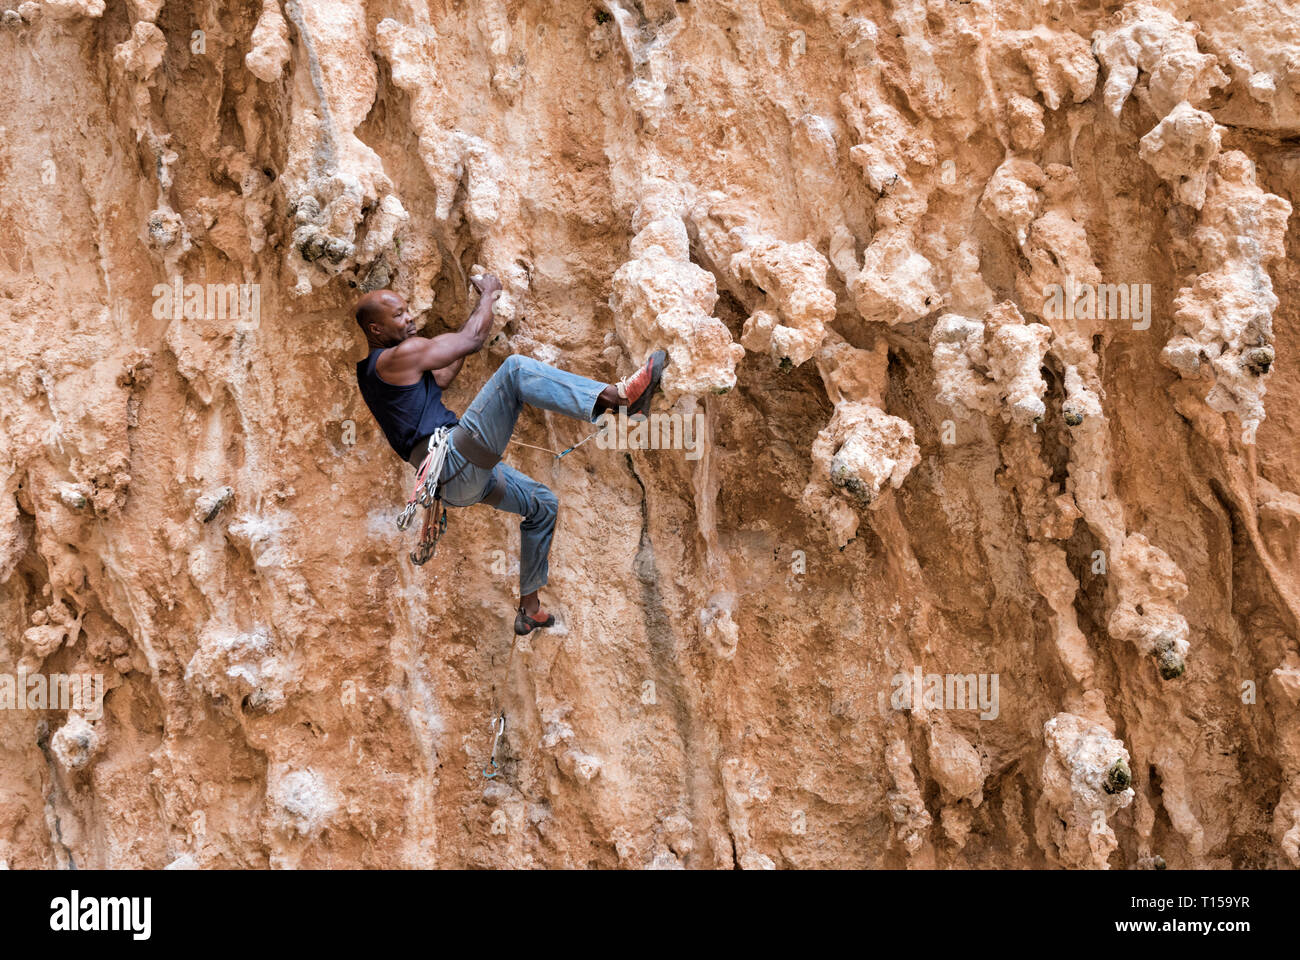 Greece, Kalymnos, climber in rock wall - Stock Image